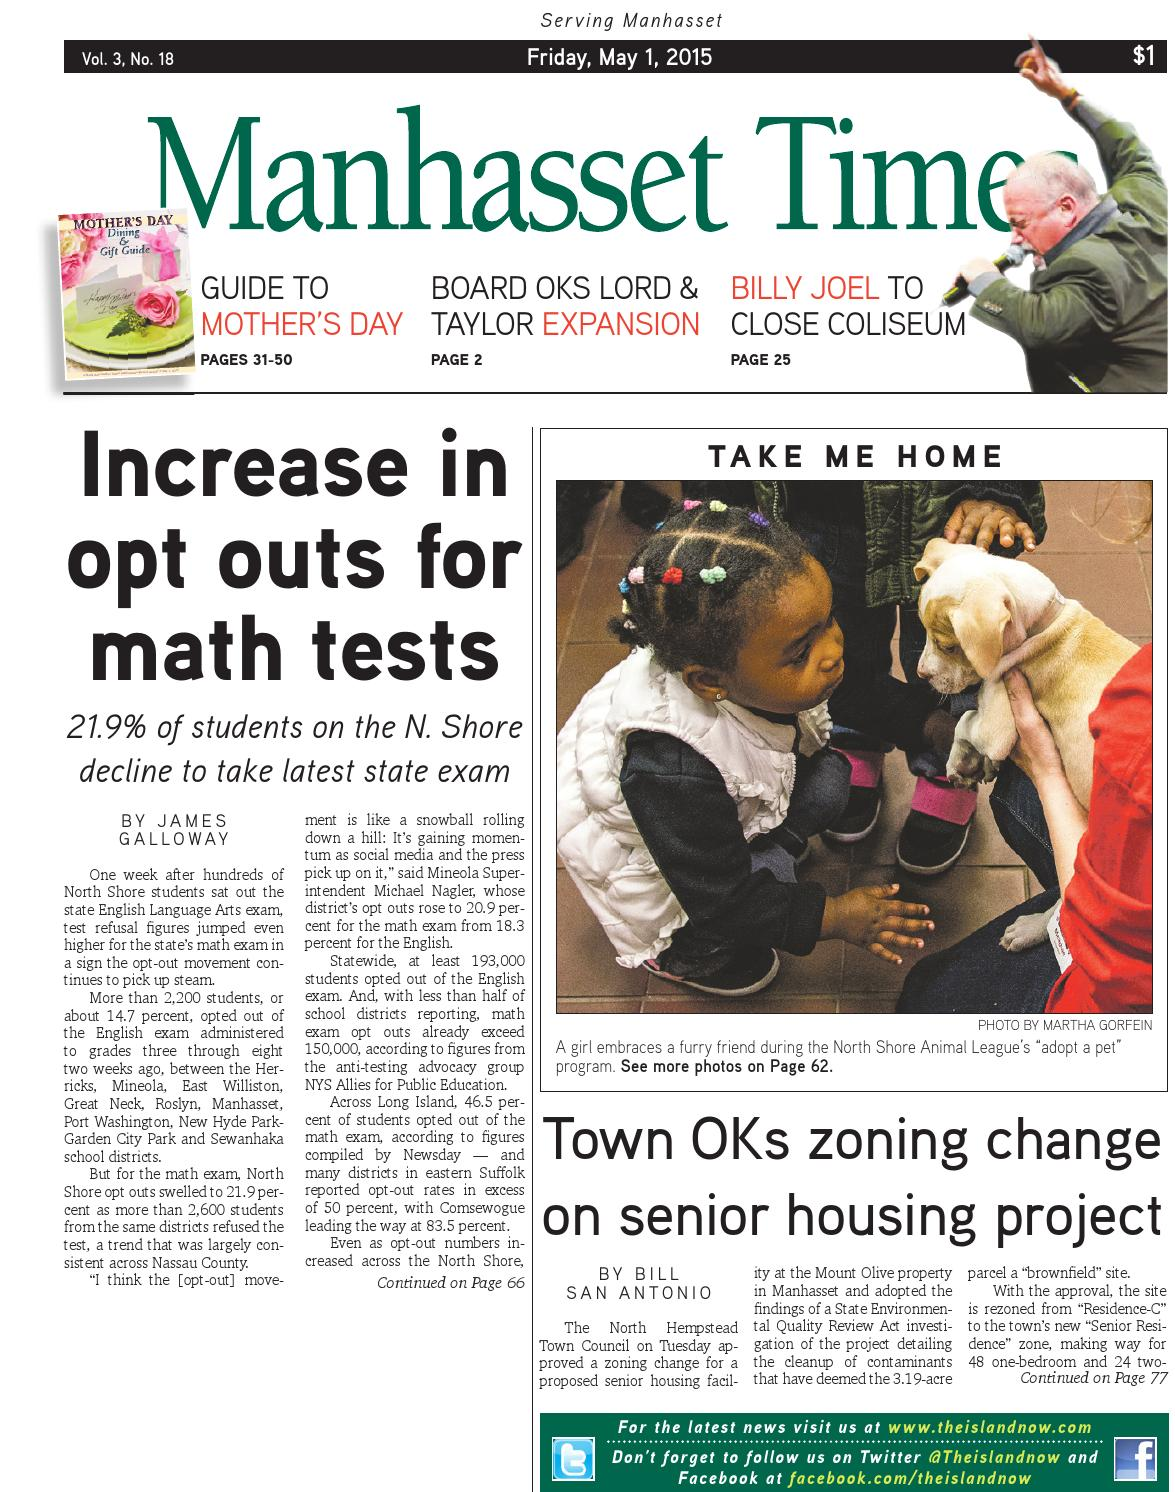 Manhasset Times 5.1.15 by The Island Now - issuu